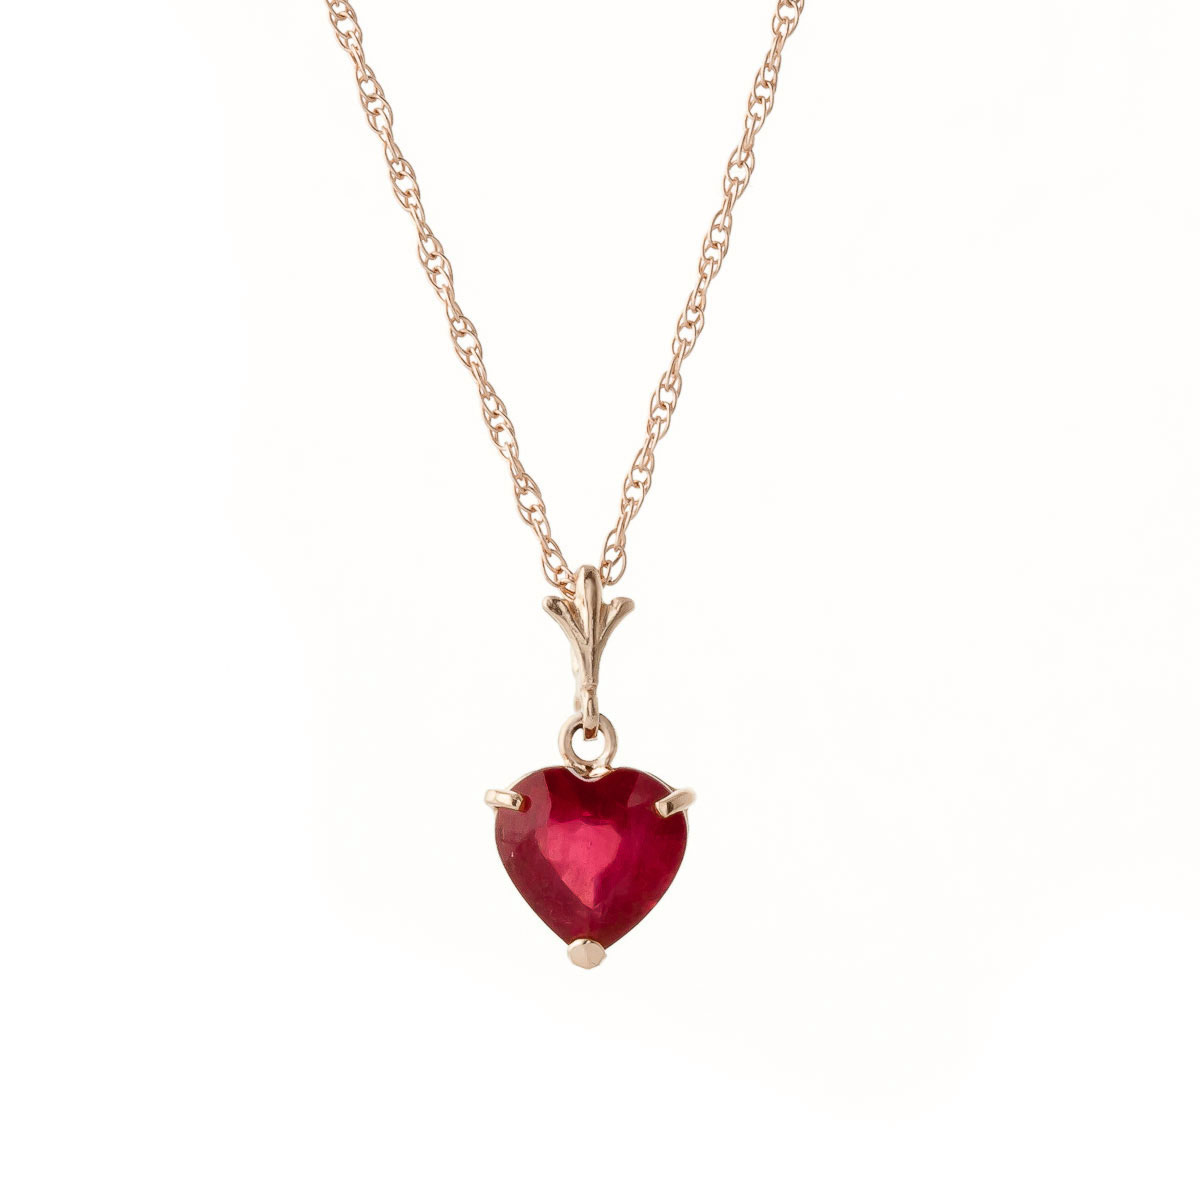 Ruby Heart Pendant Necklace 1.45ct in 9ct Rose Gold